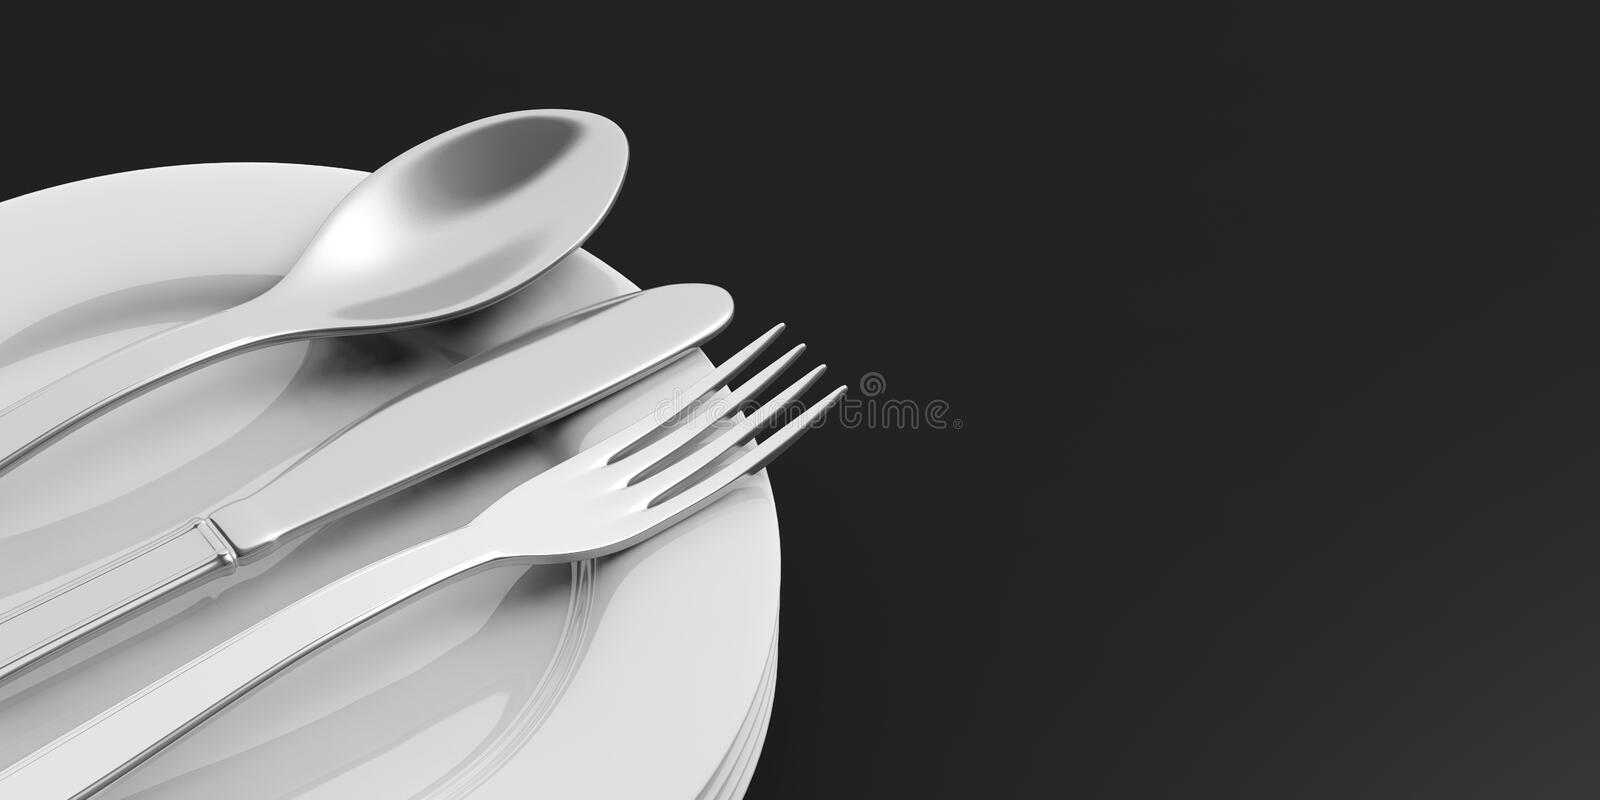 Stack of plates and cutlery on black background vector illustration